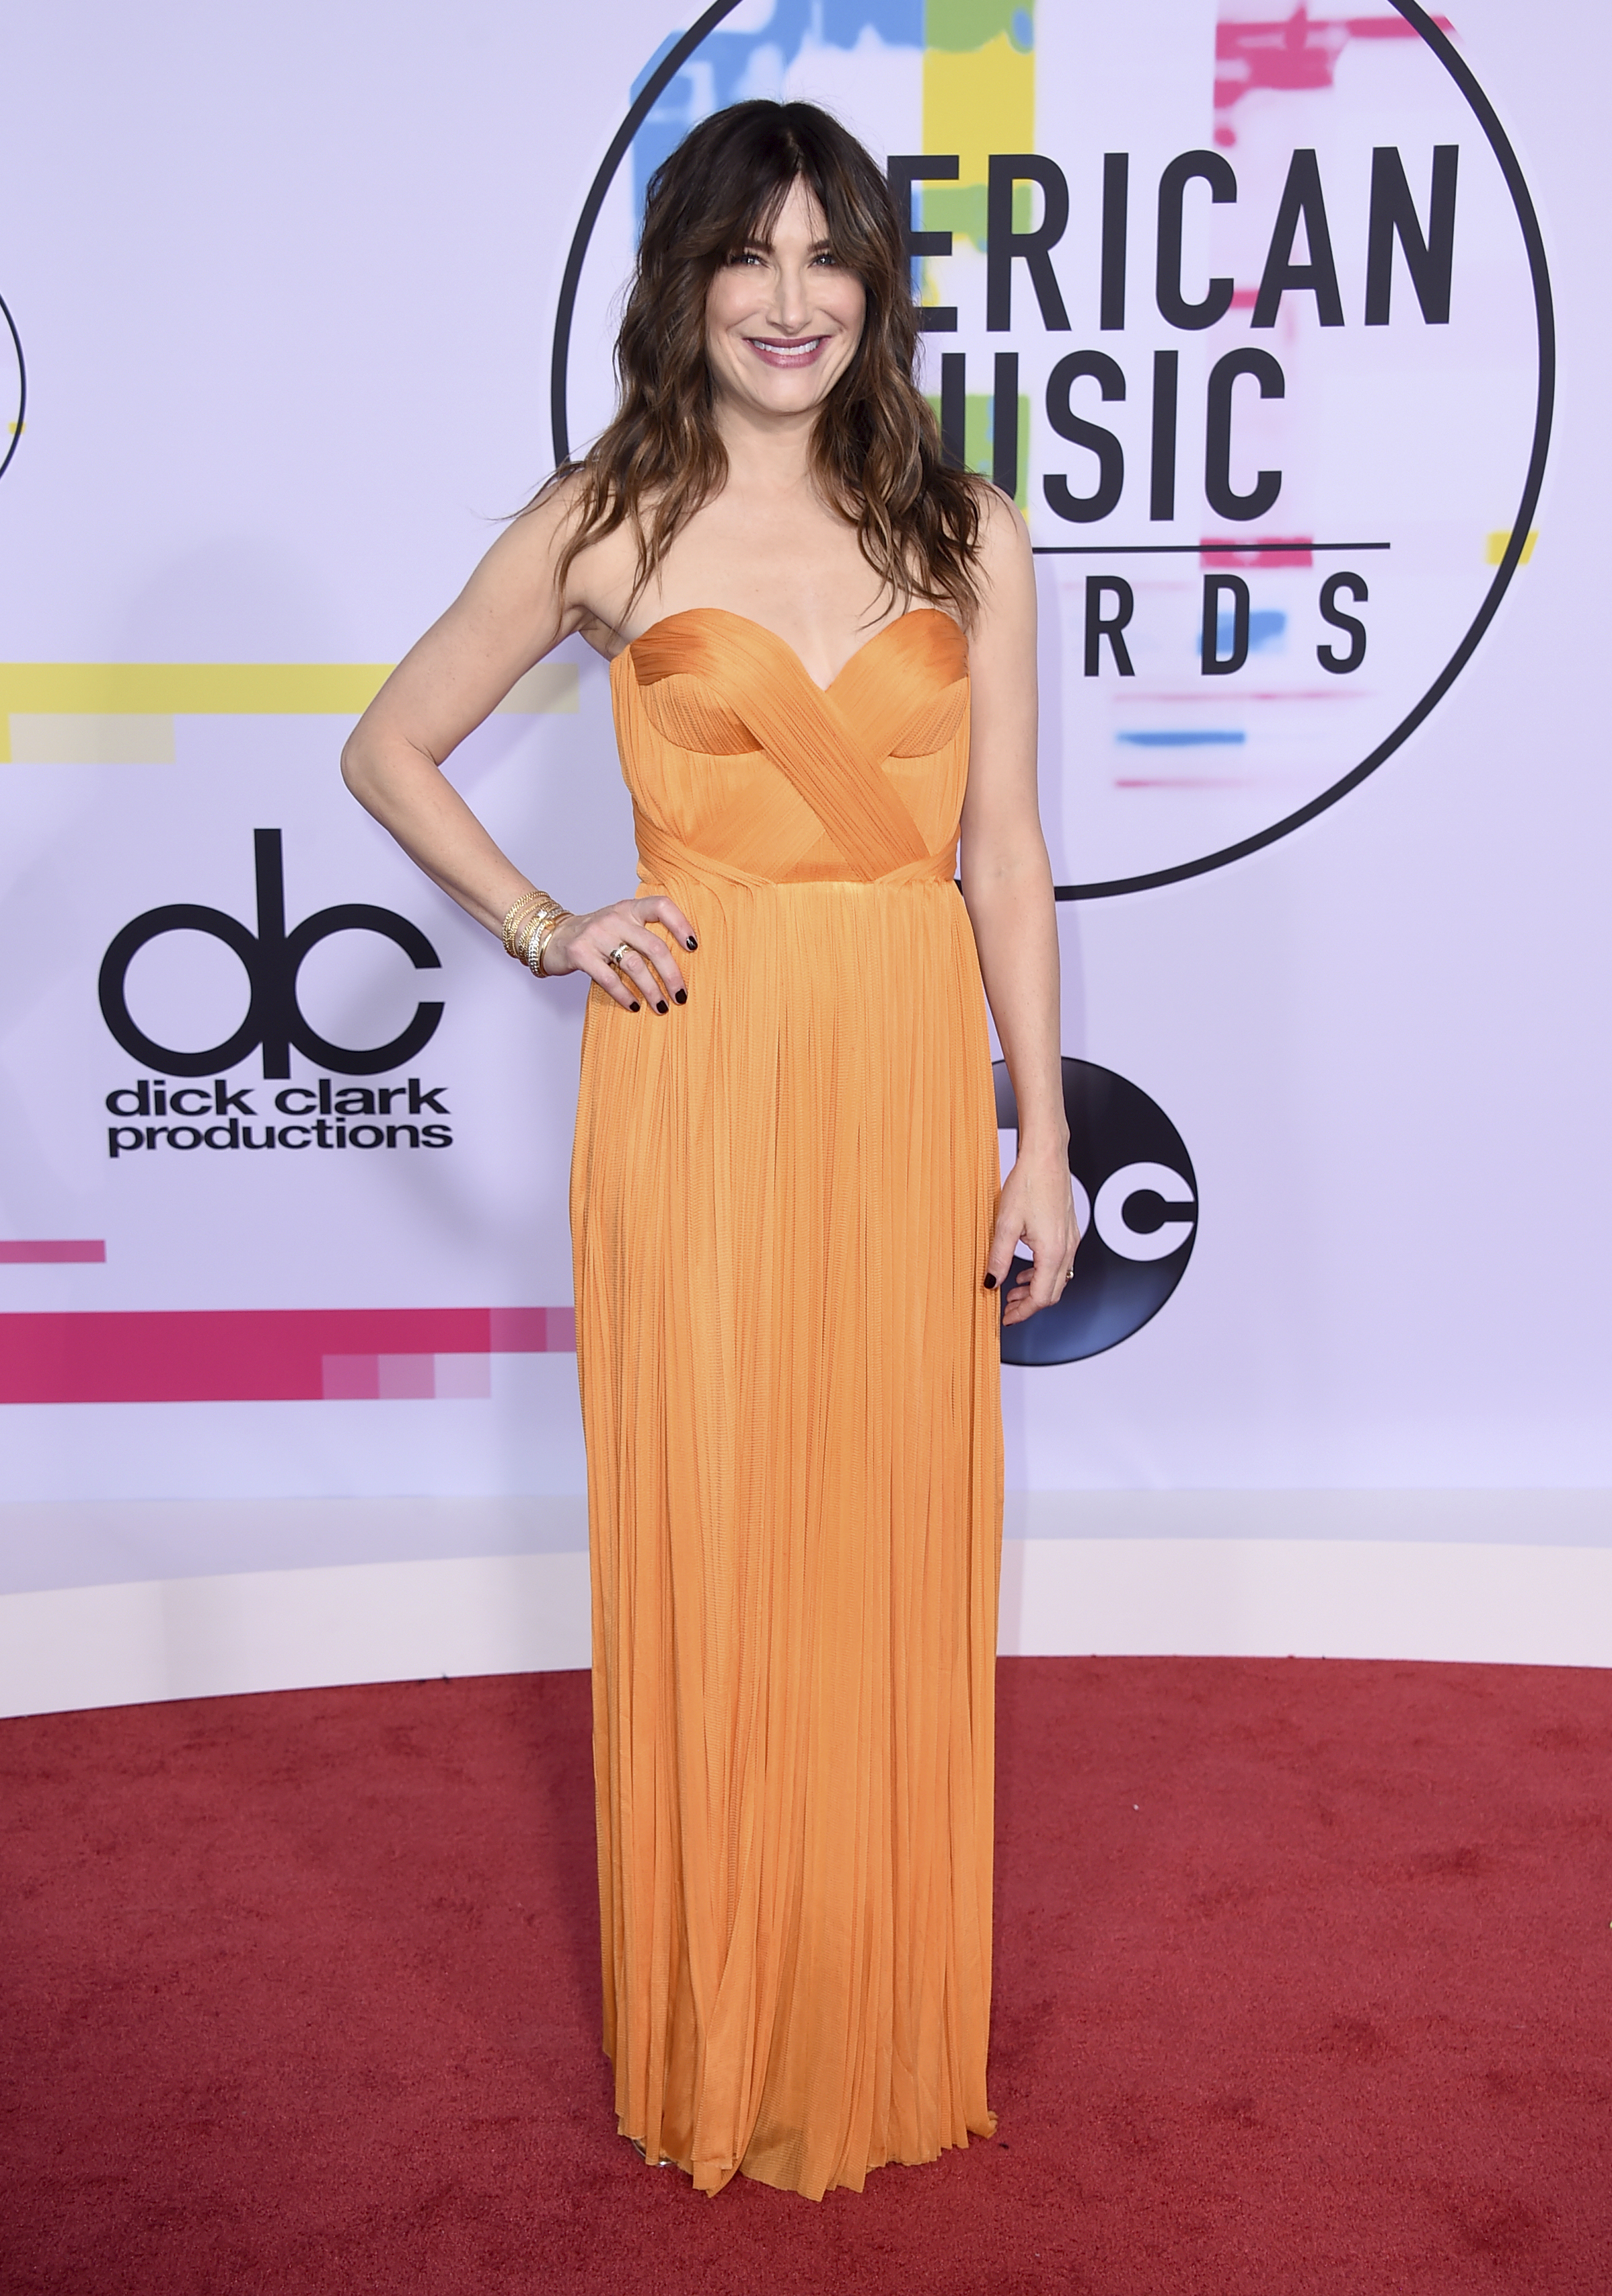 <div class='meta'><div class='origin-logo' data-origin='none'></div><span class='caption-text' data-credit='Jordan Strauss/Invision/AP'>Kathryn Hahn arrives at the American Music Awards at the Microsoft Theater on Sunday, Nov. 19, 2017, in Los Angeles.</span></div>